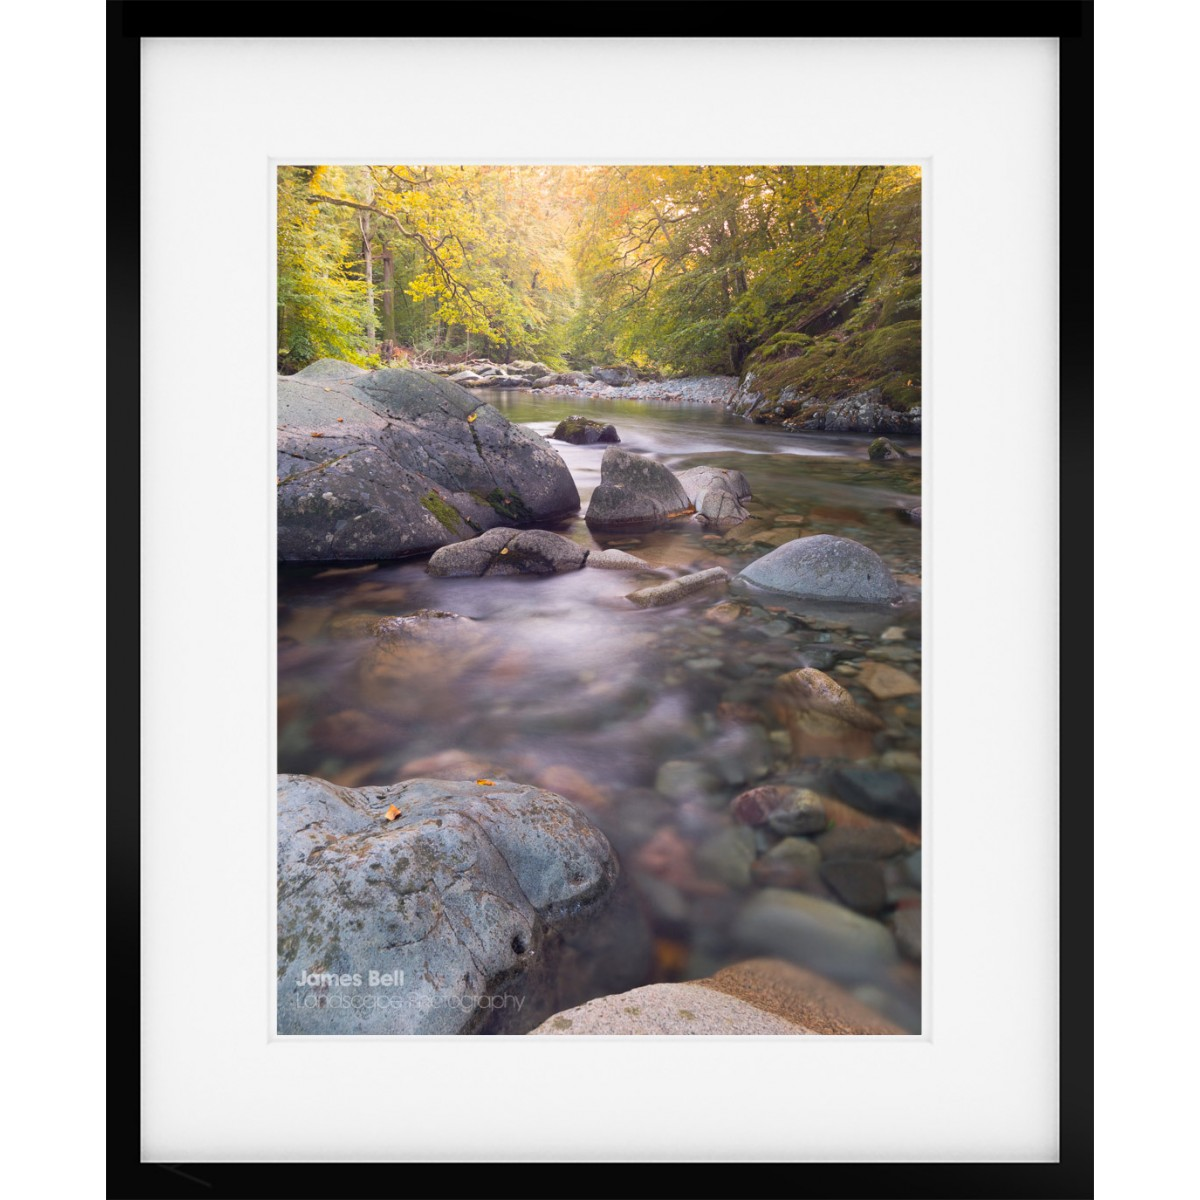 Framed Print of the River Eskdale in the Eskdale Valley Lake District.